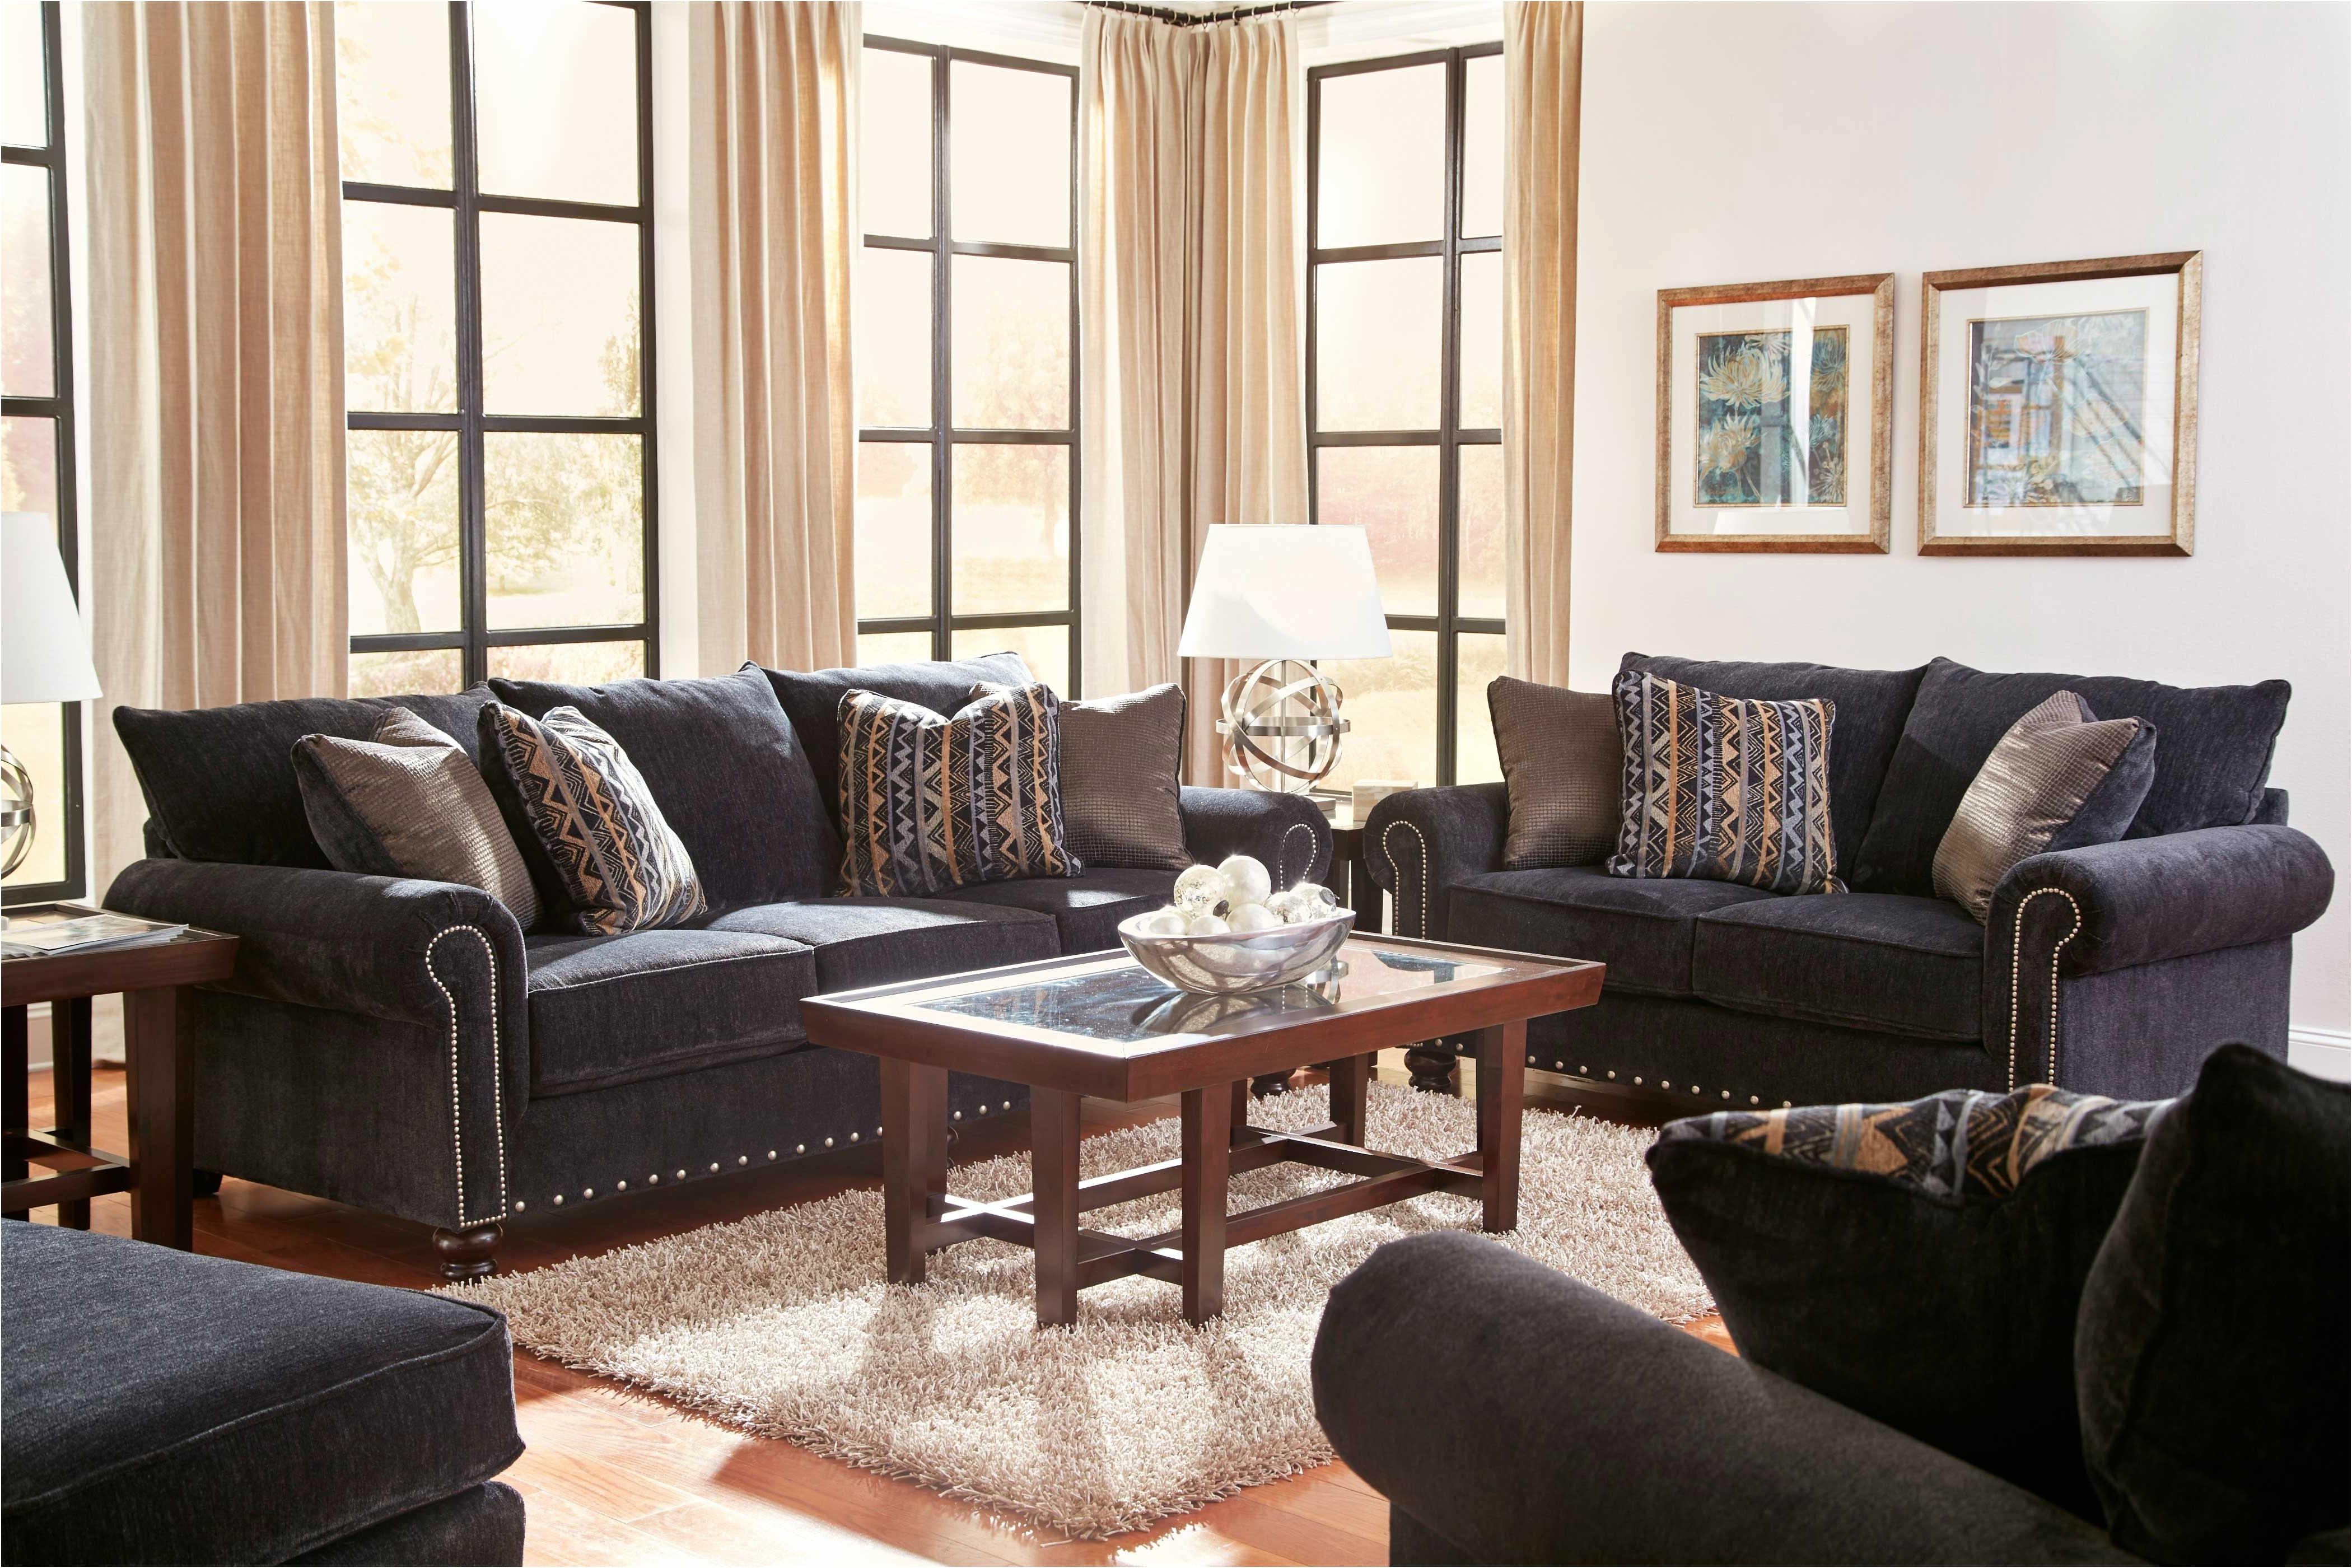 Upscale Sectional Sofas Luxury Sofa Beds Modern Chaise Fabric Intended For Sectional Sofas In Stock (View 9 of 10)